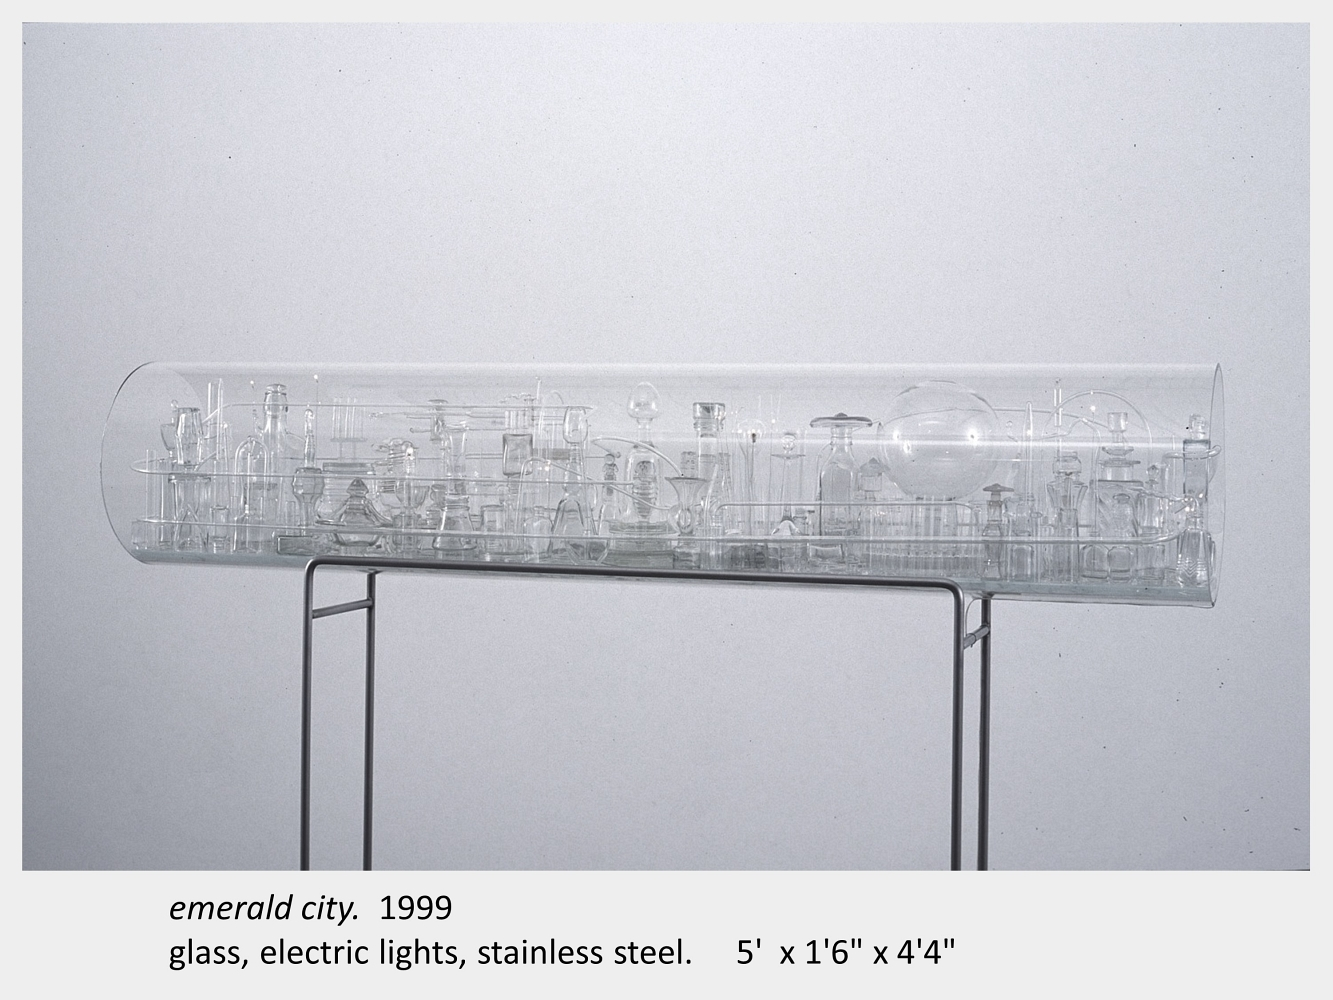 "Artwork by Lois Andison. Emerald city. 1999. glass, electric lights, stainless steel. 5'x 1'6"" x 4'4"""